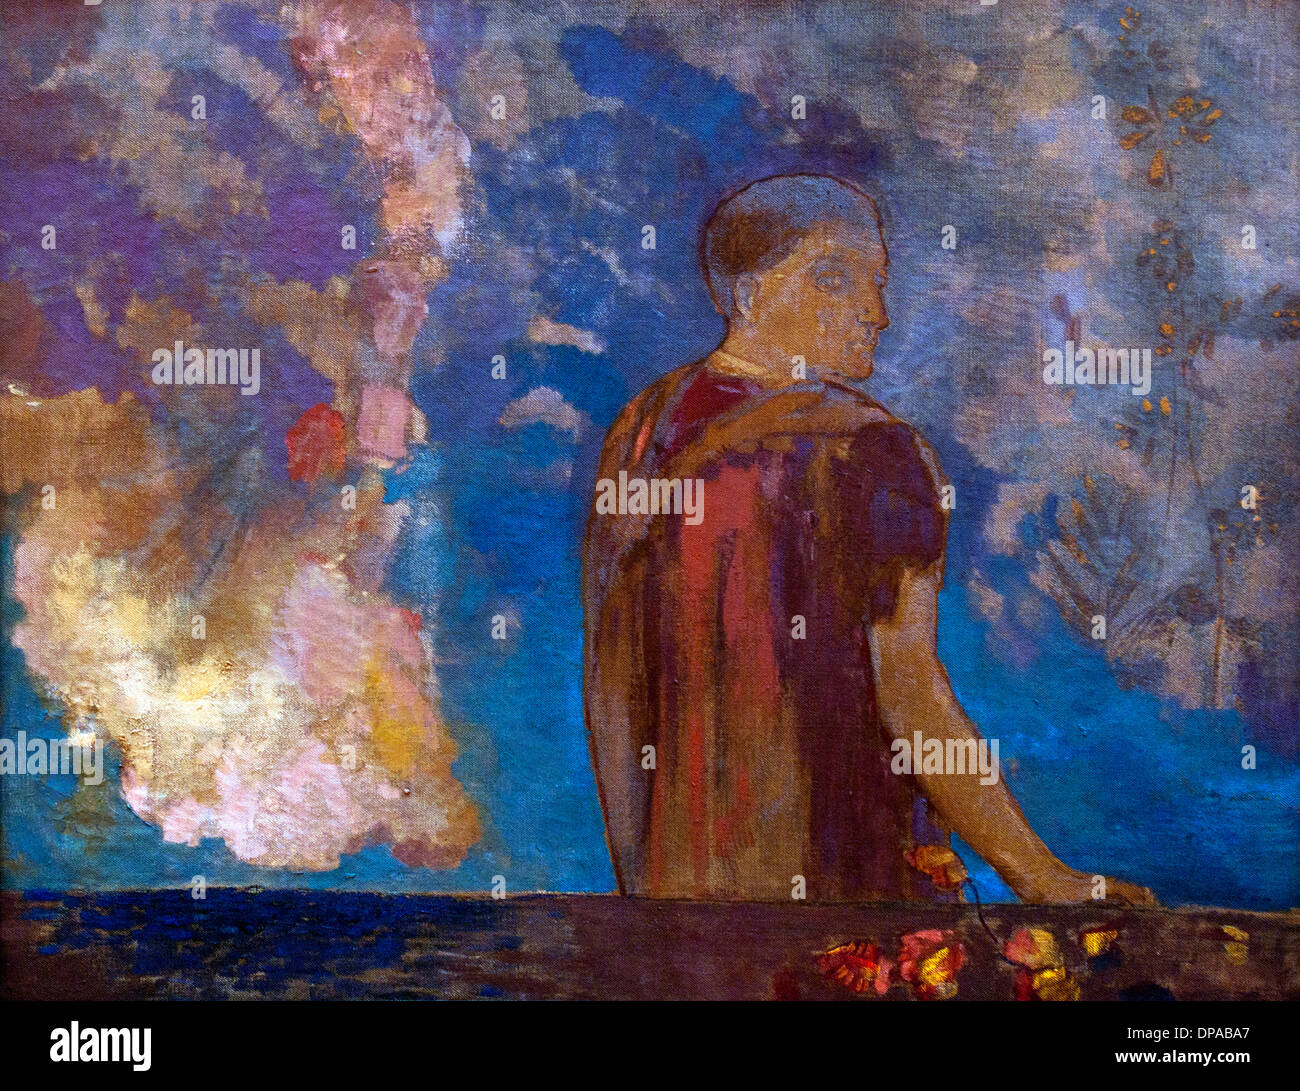 Le Regard - the Look 1910 Odilon Redon 1840-1916 France French - Stock Image